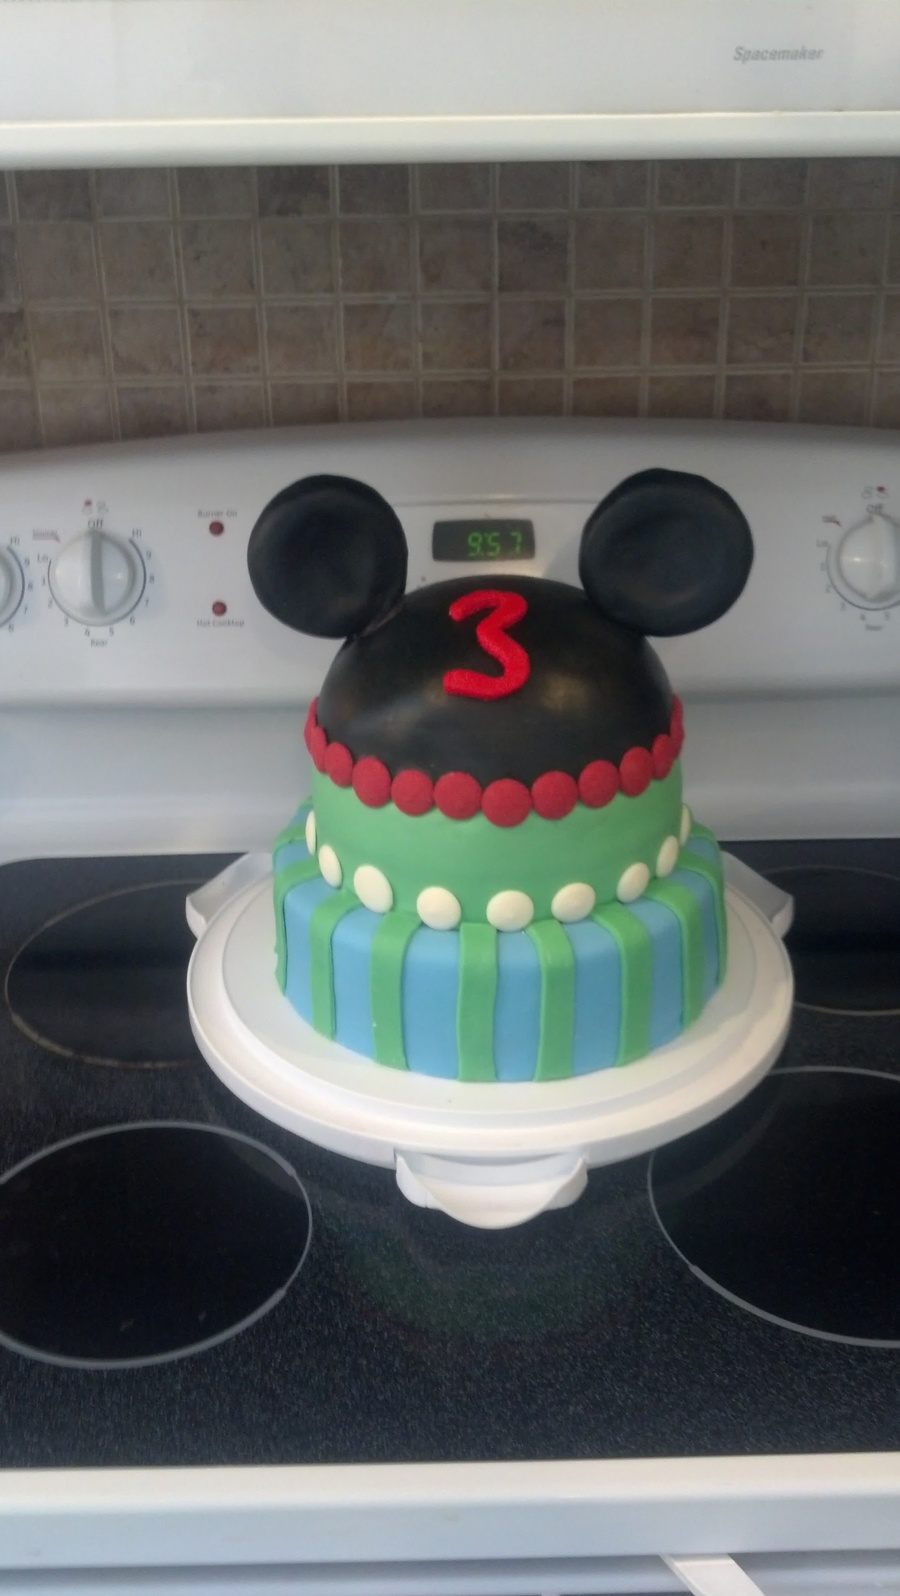 Mickeycake on Cake Central